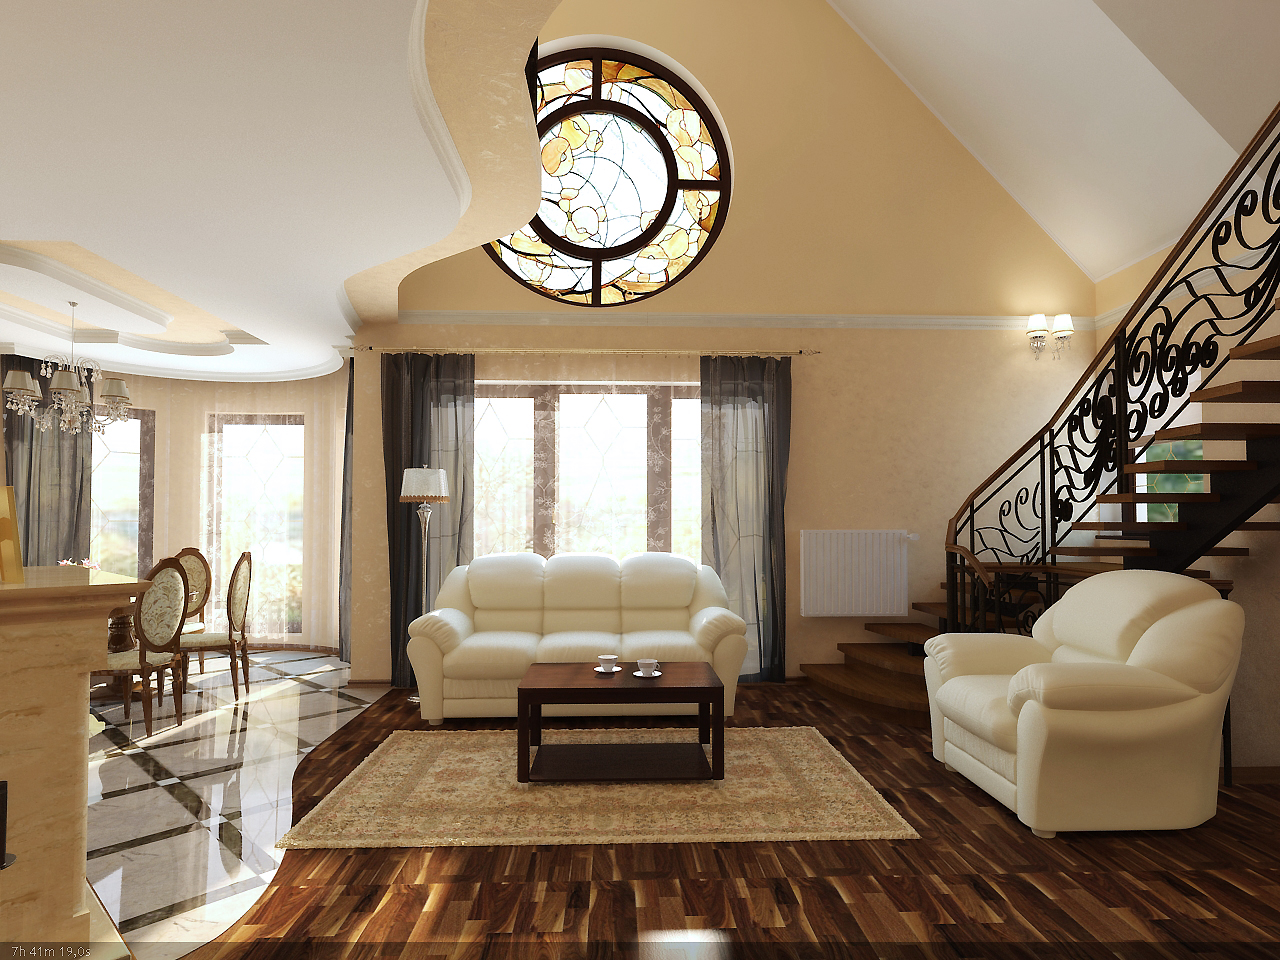 Living Room House Interior Design Pictures classic interior design home interior